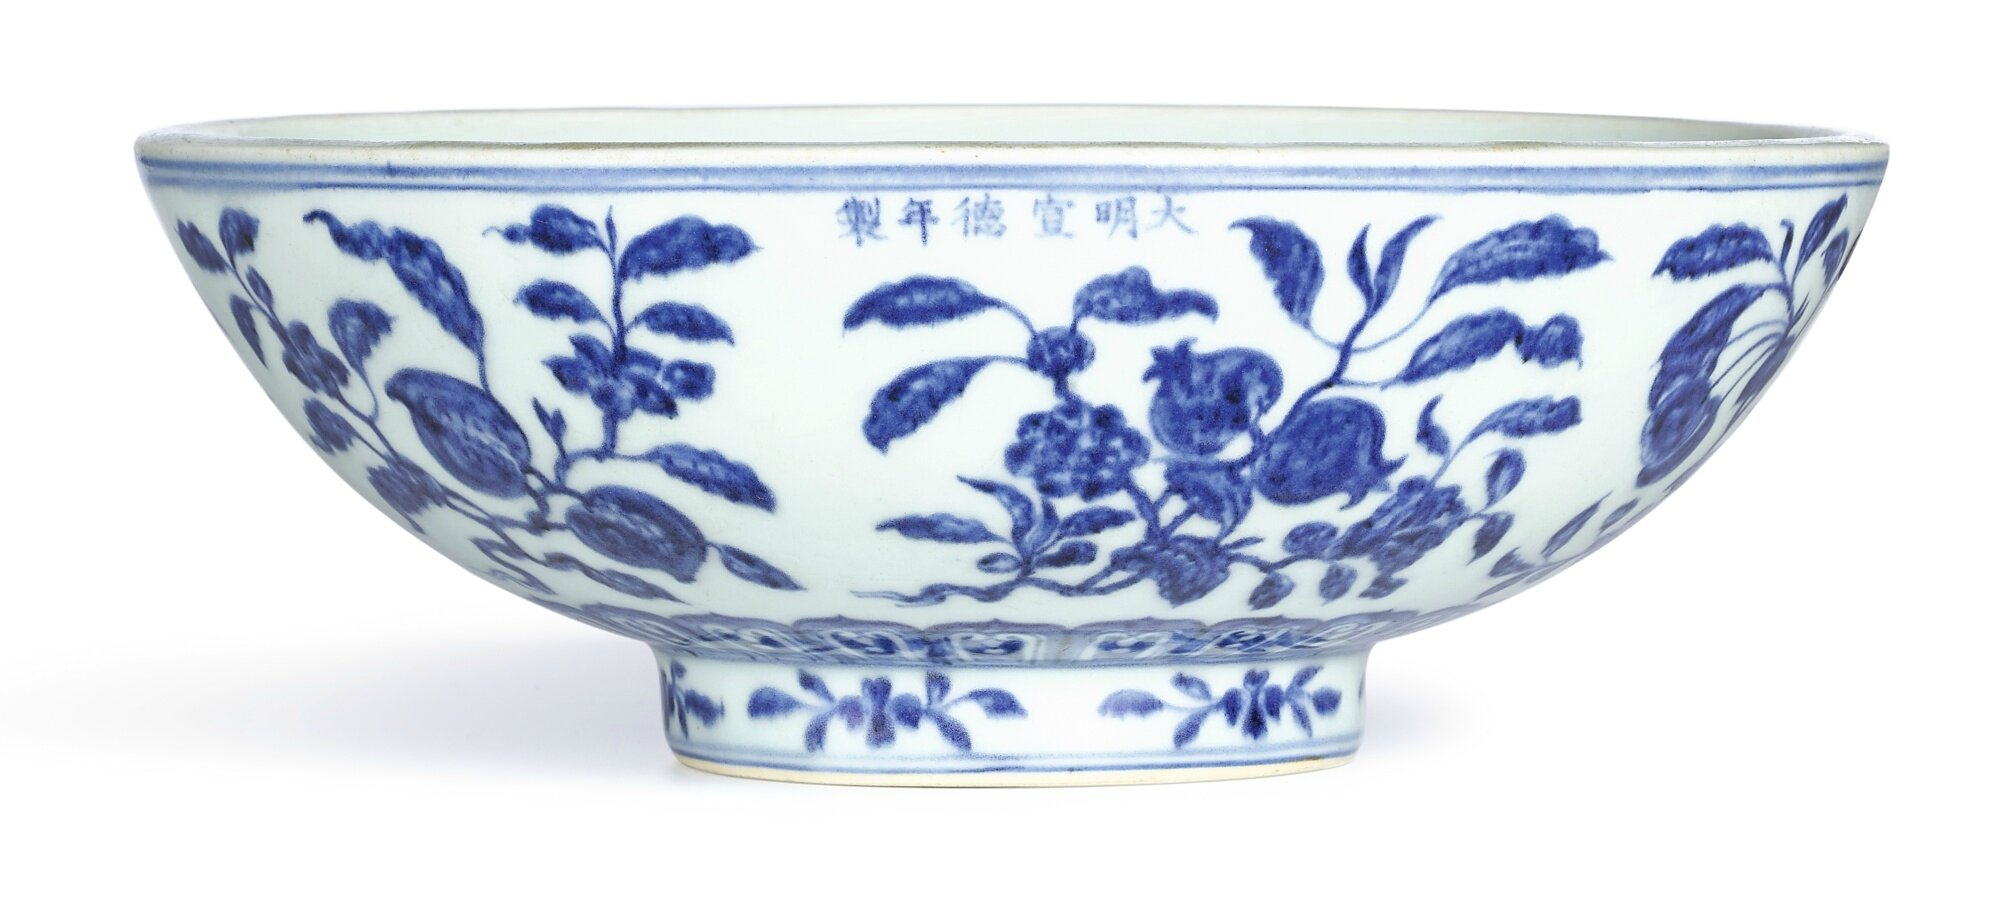 A large and rare blue and white 'fruit spray' bowl, mark and period of Xuande (1426-1435)